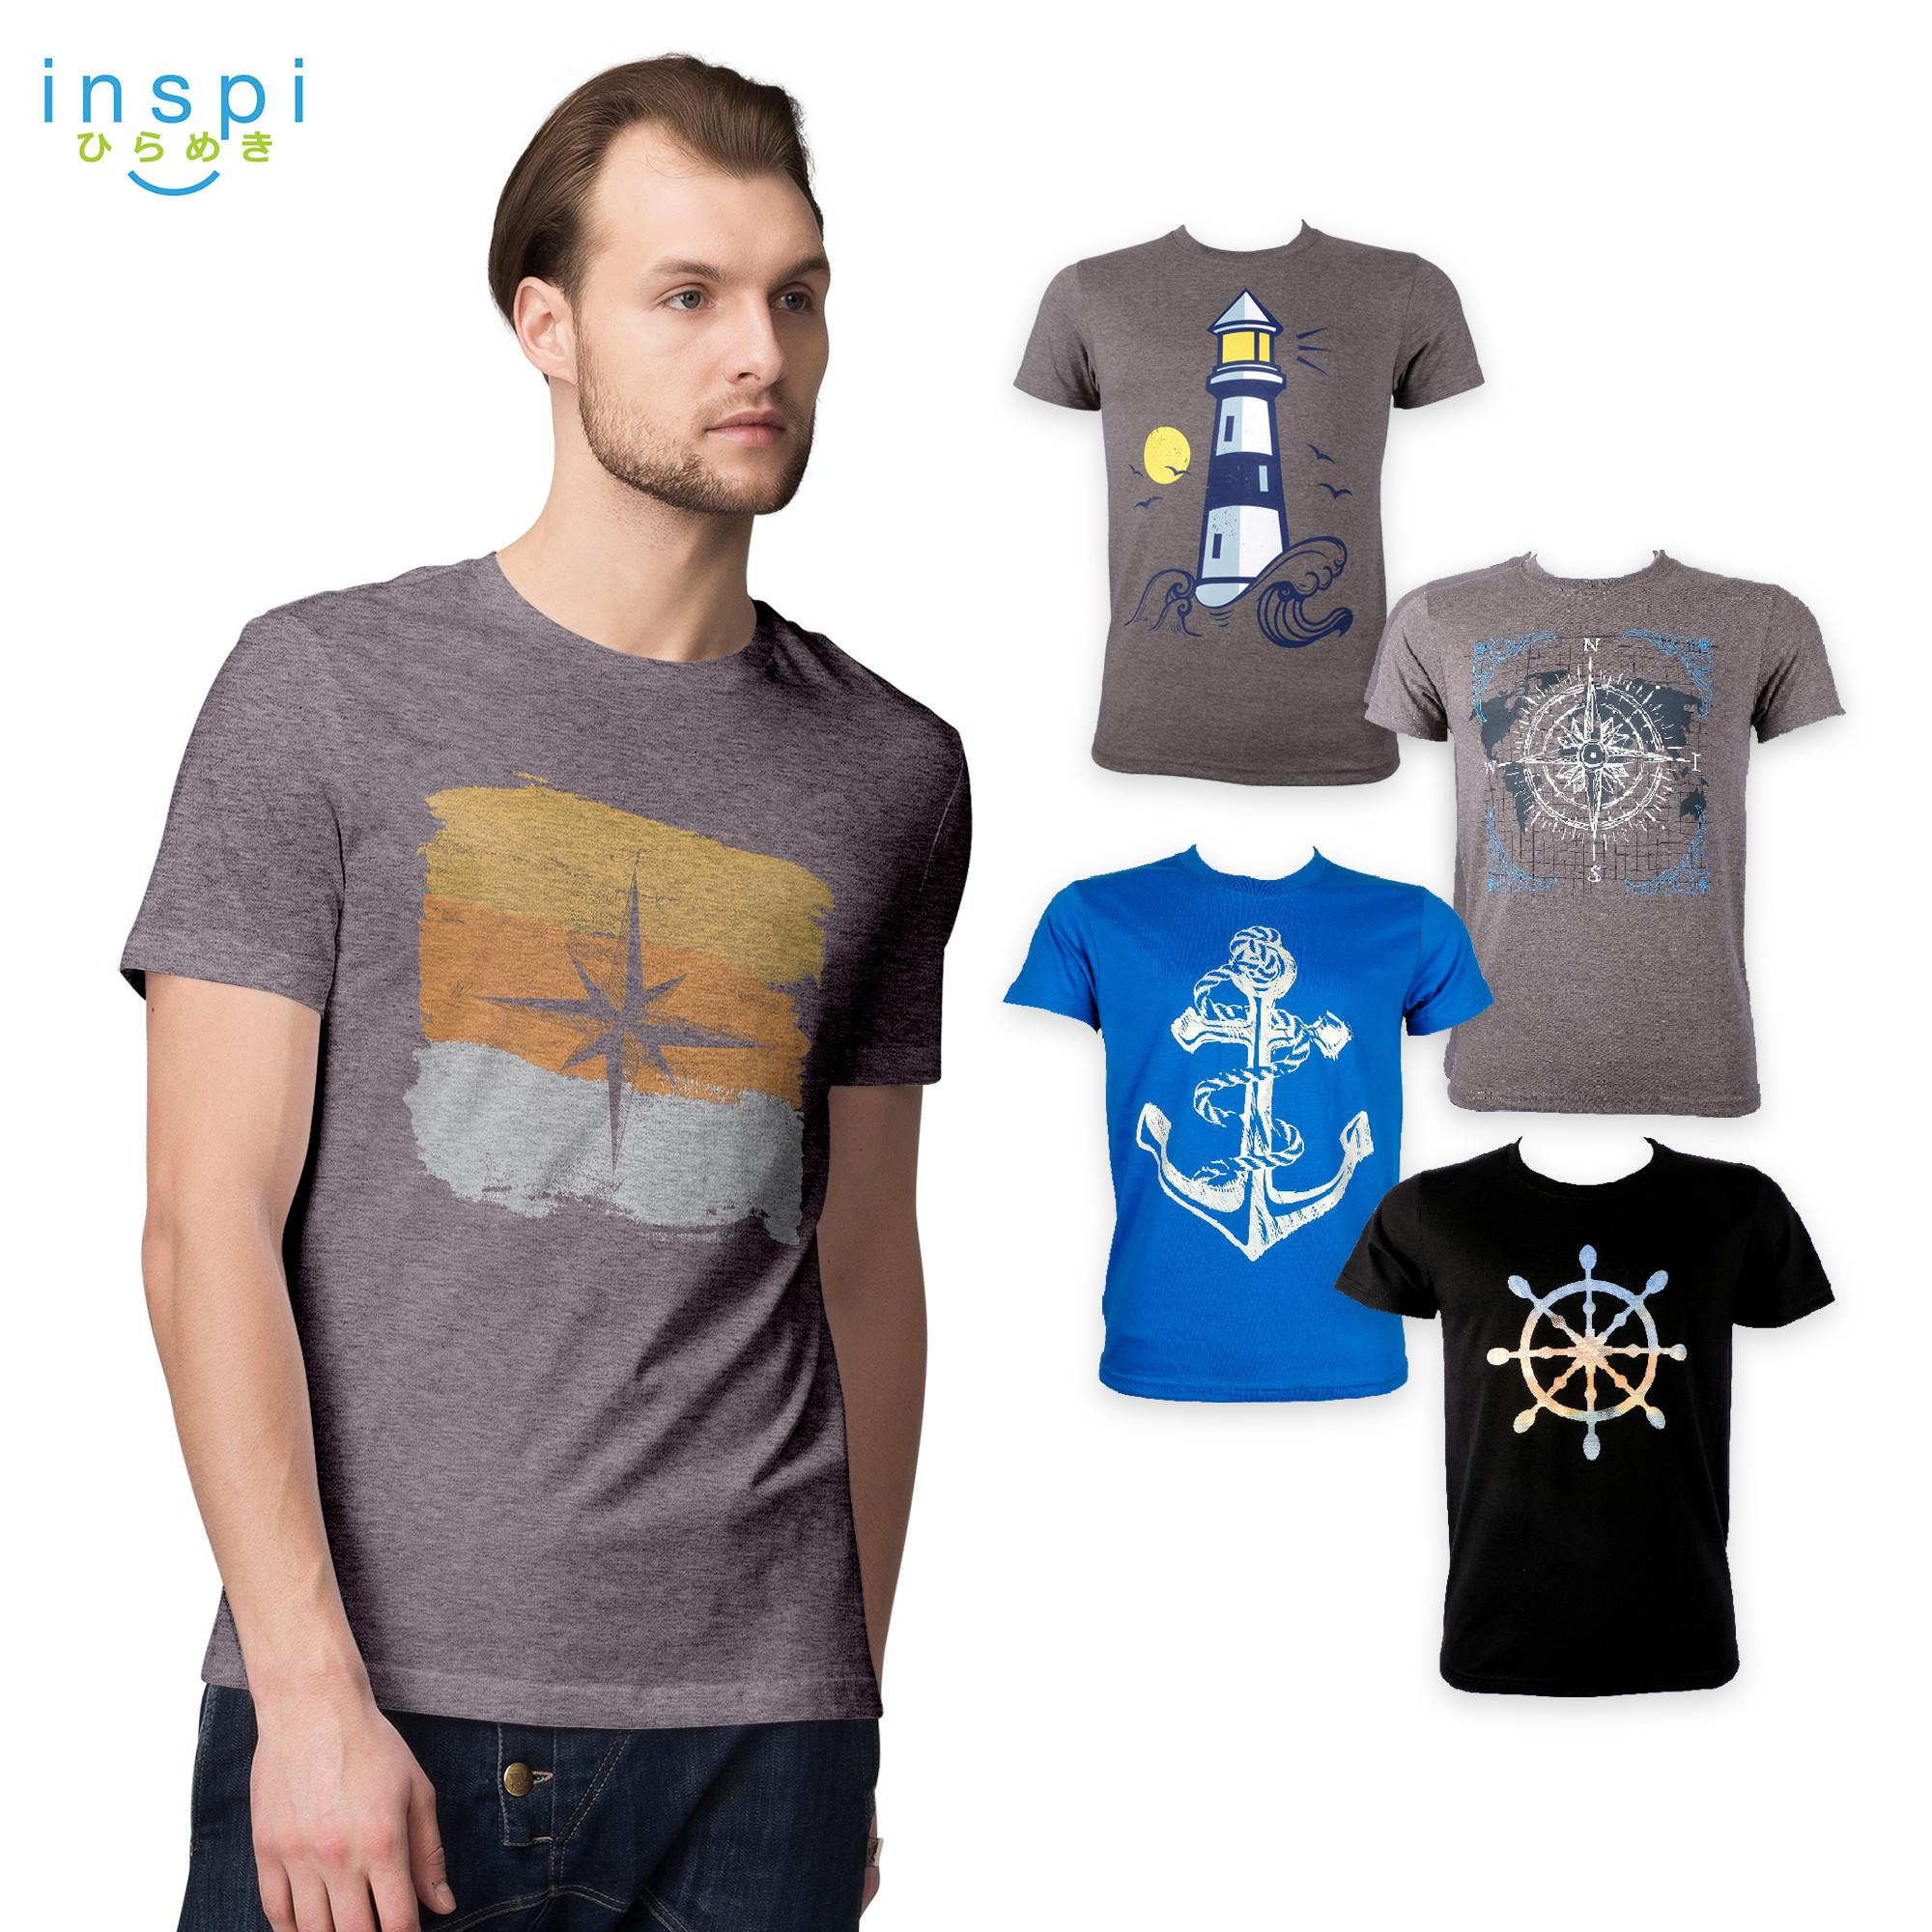 6d621017e INSPI Tees Navigate Collection tshirt printed graphic tee Mens t shirt  shirts for men tshirts sale